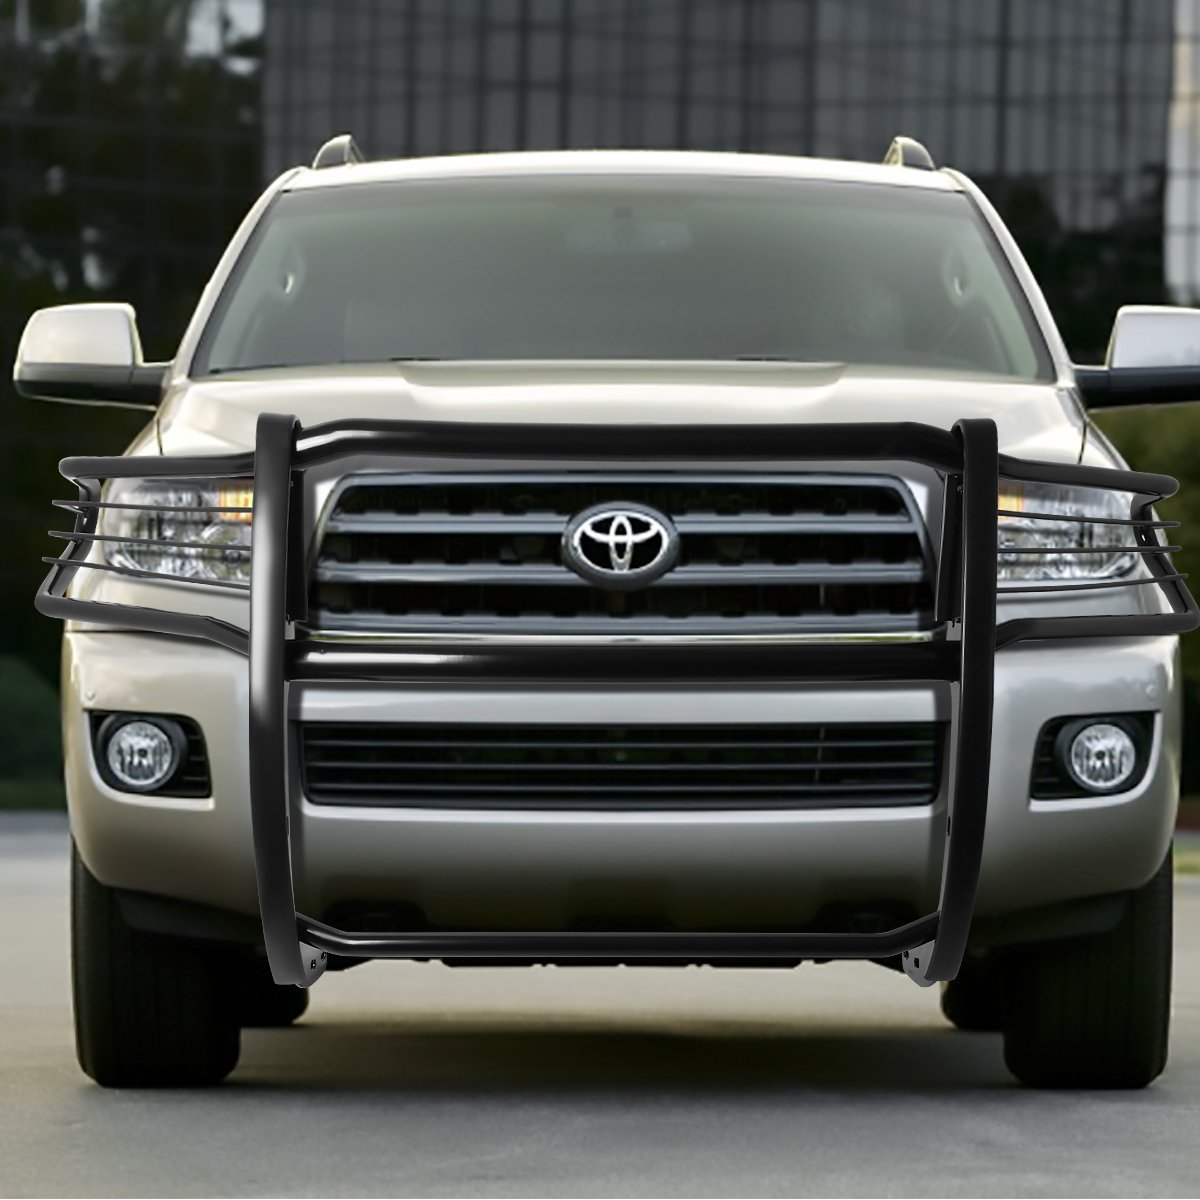 Toyota Sequoia: 08-16 Toyota Sequoia Front Bumper Protector Brush Grille